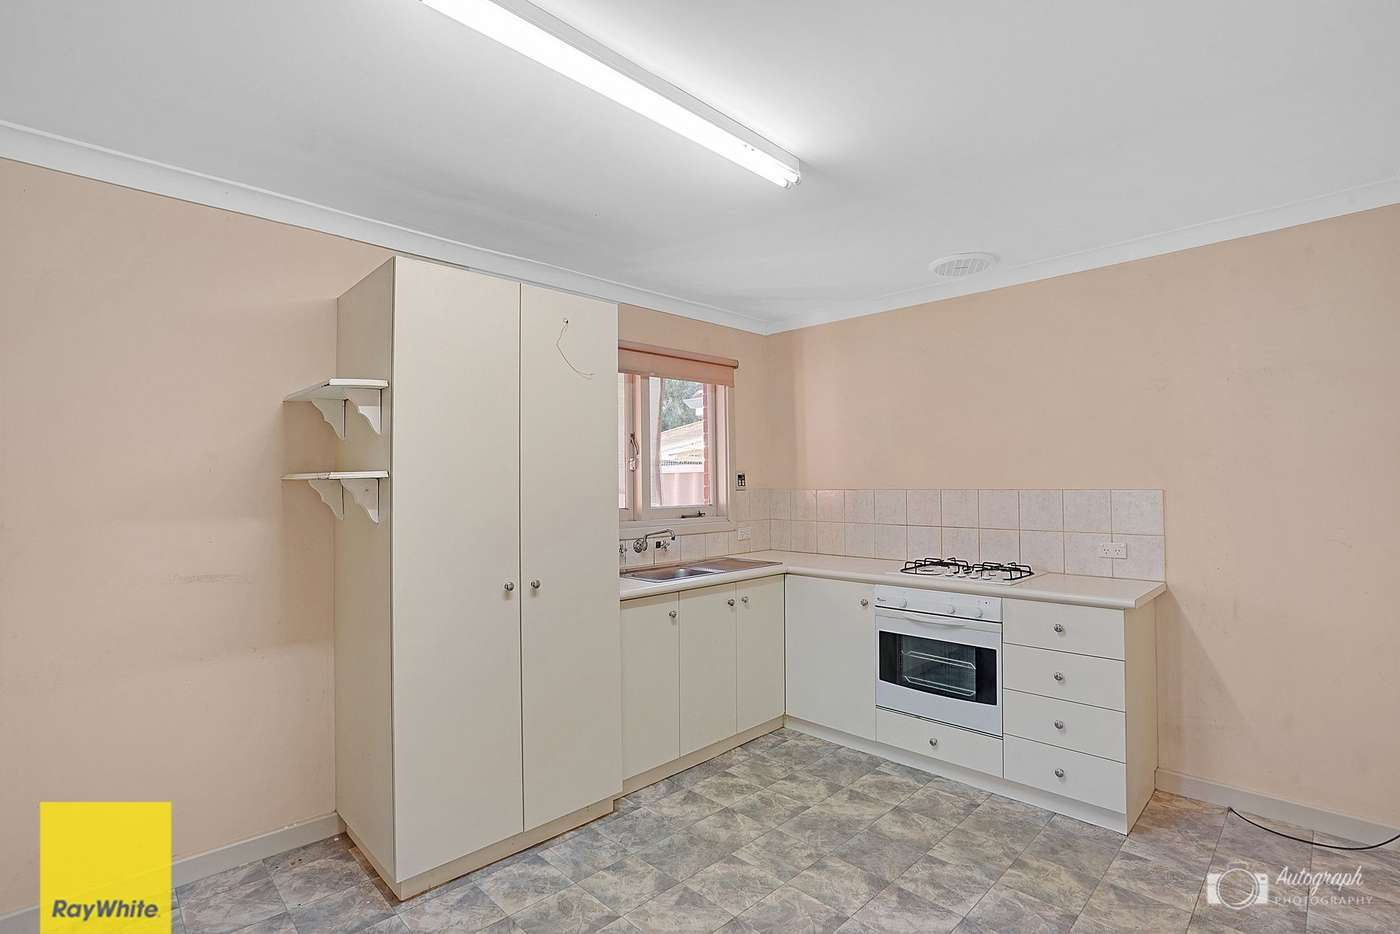 Seventh view of Homely house listing, 15A Bersted Street, Balga WA 6061